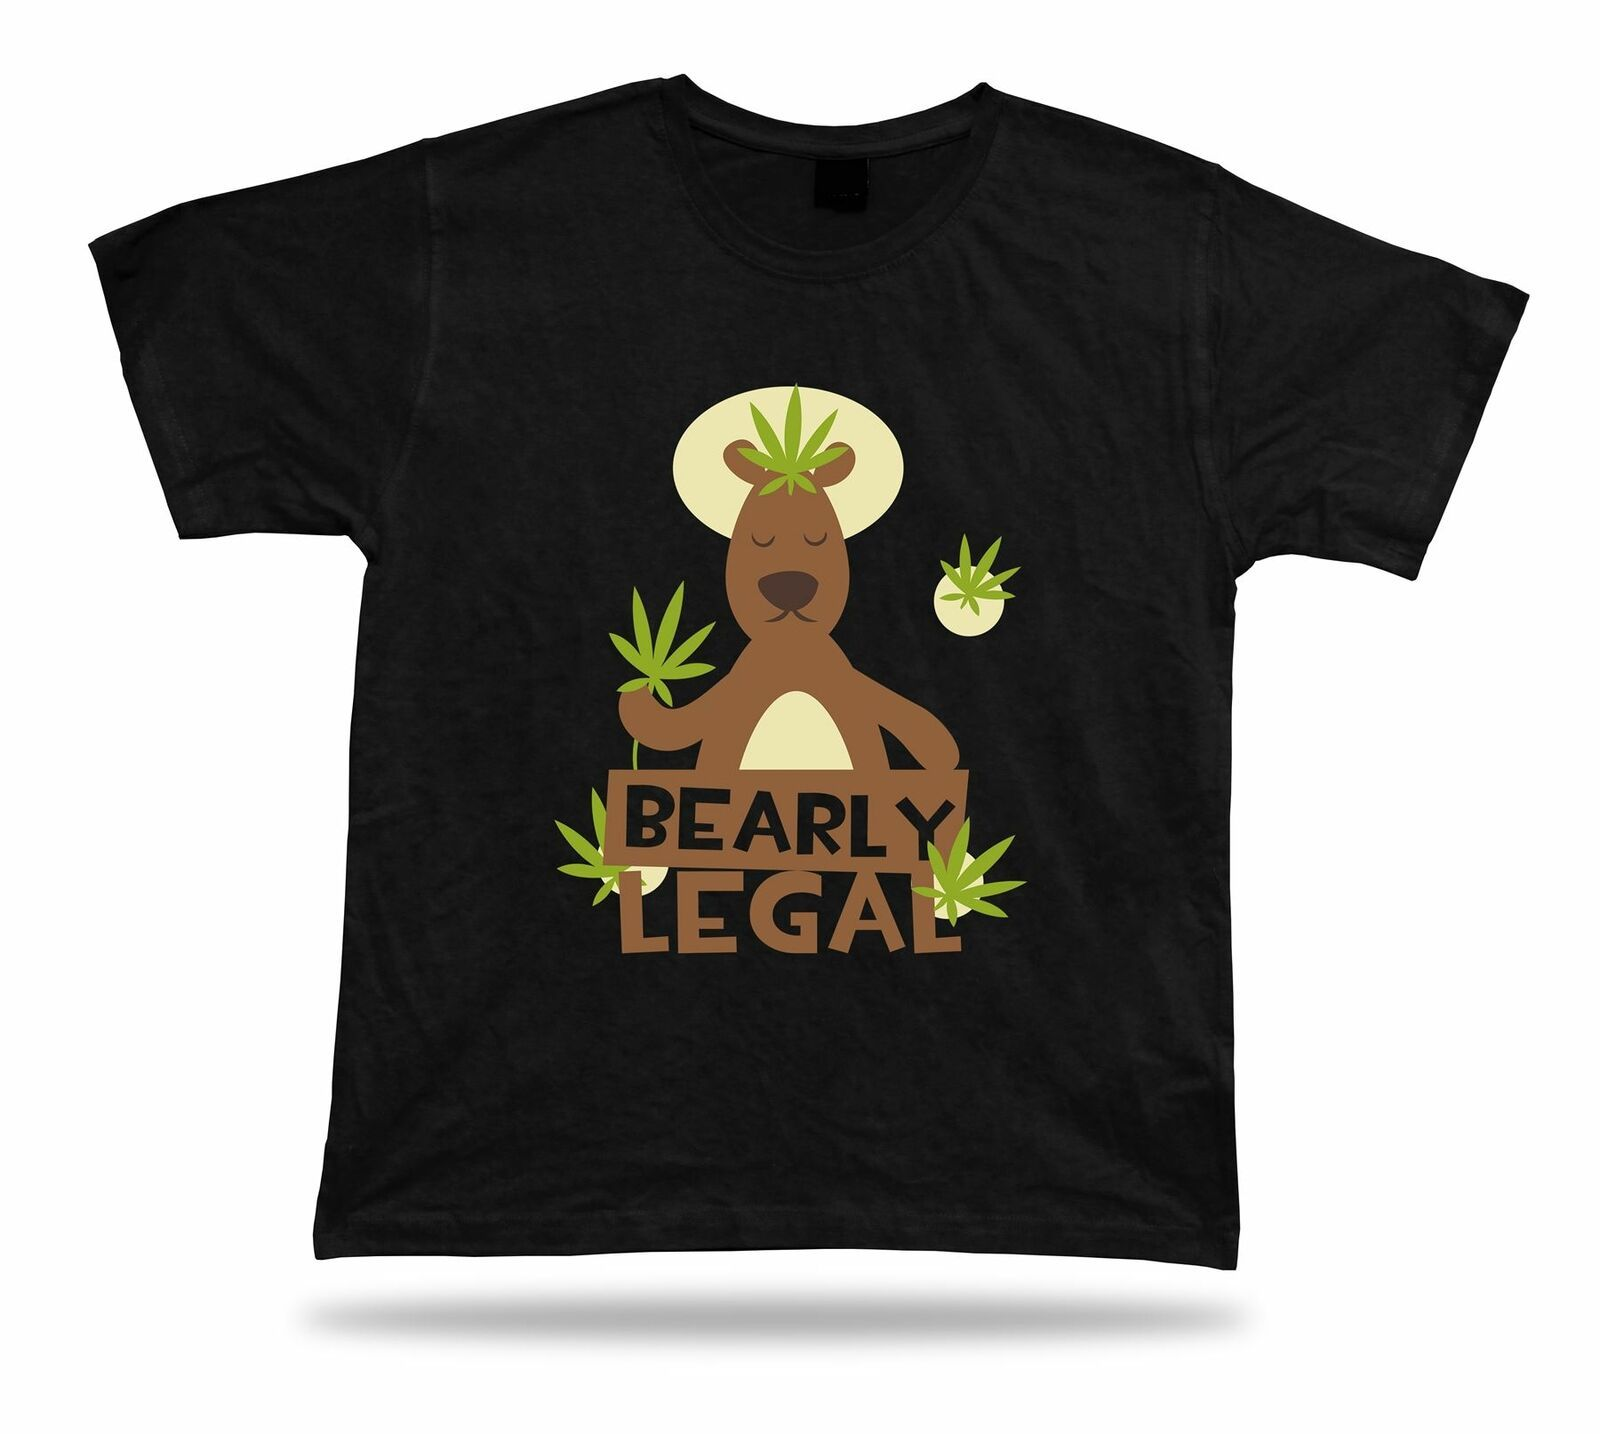 Primary image for Bearly legal Bear with Weed Leaf t shirt tee cool design special gift apparel